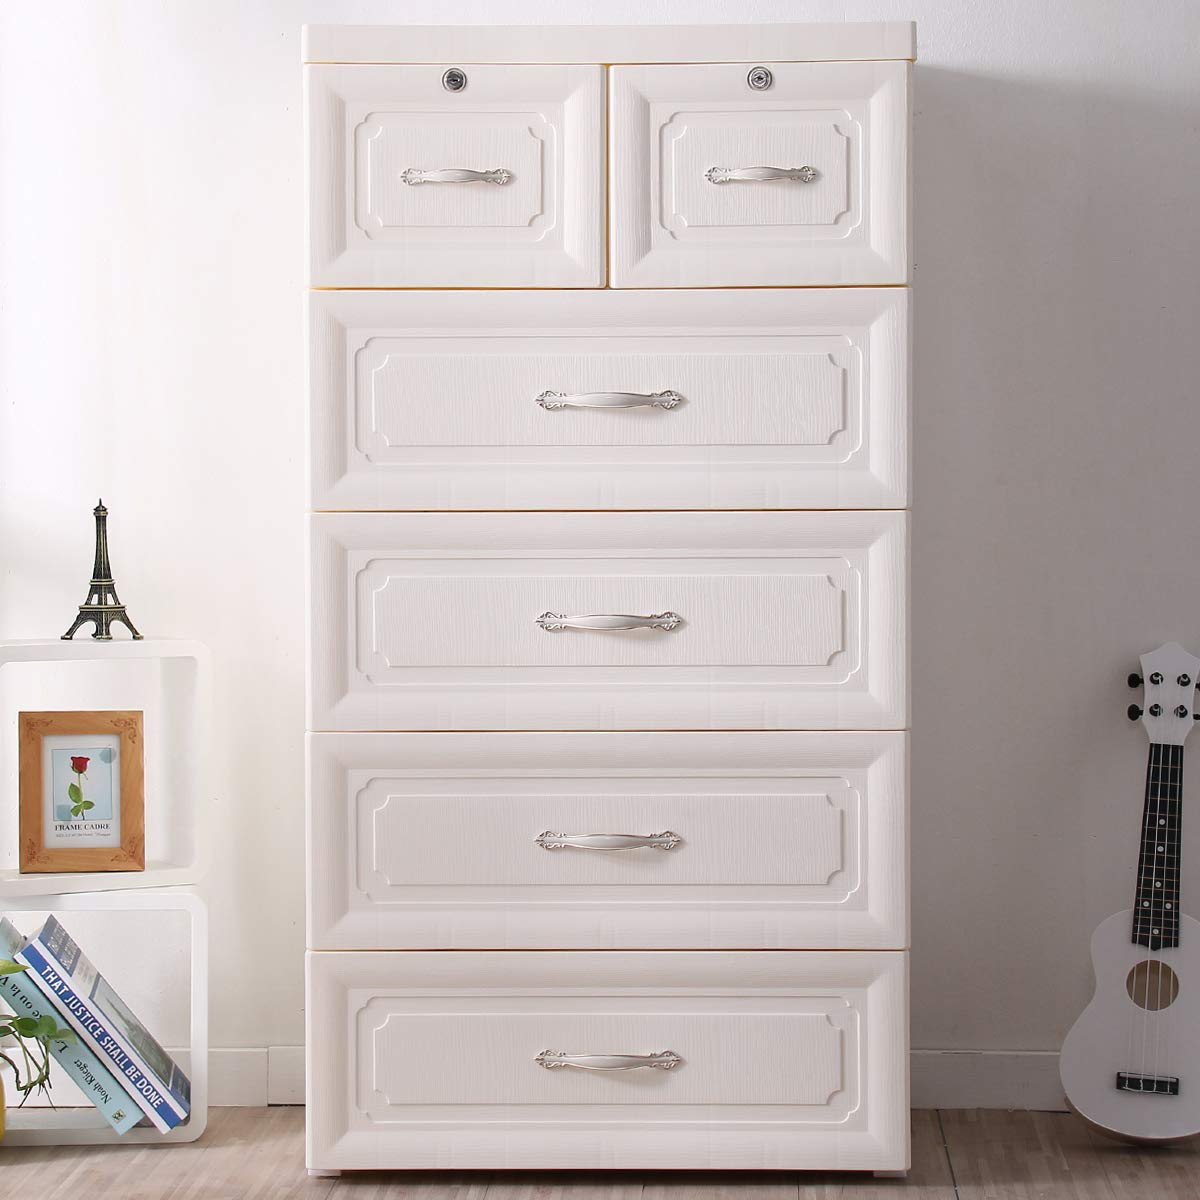 Nafenai 5 Drawer Chest, Plstic Large Storage Dresser Closet Organizer with Removable Wheels, 23.62'' L x 15.75'' W x 44.79'' H - Whole White